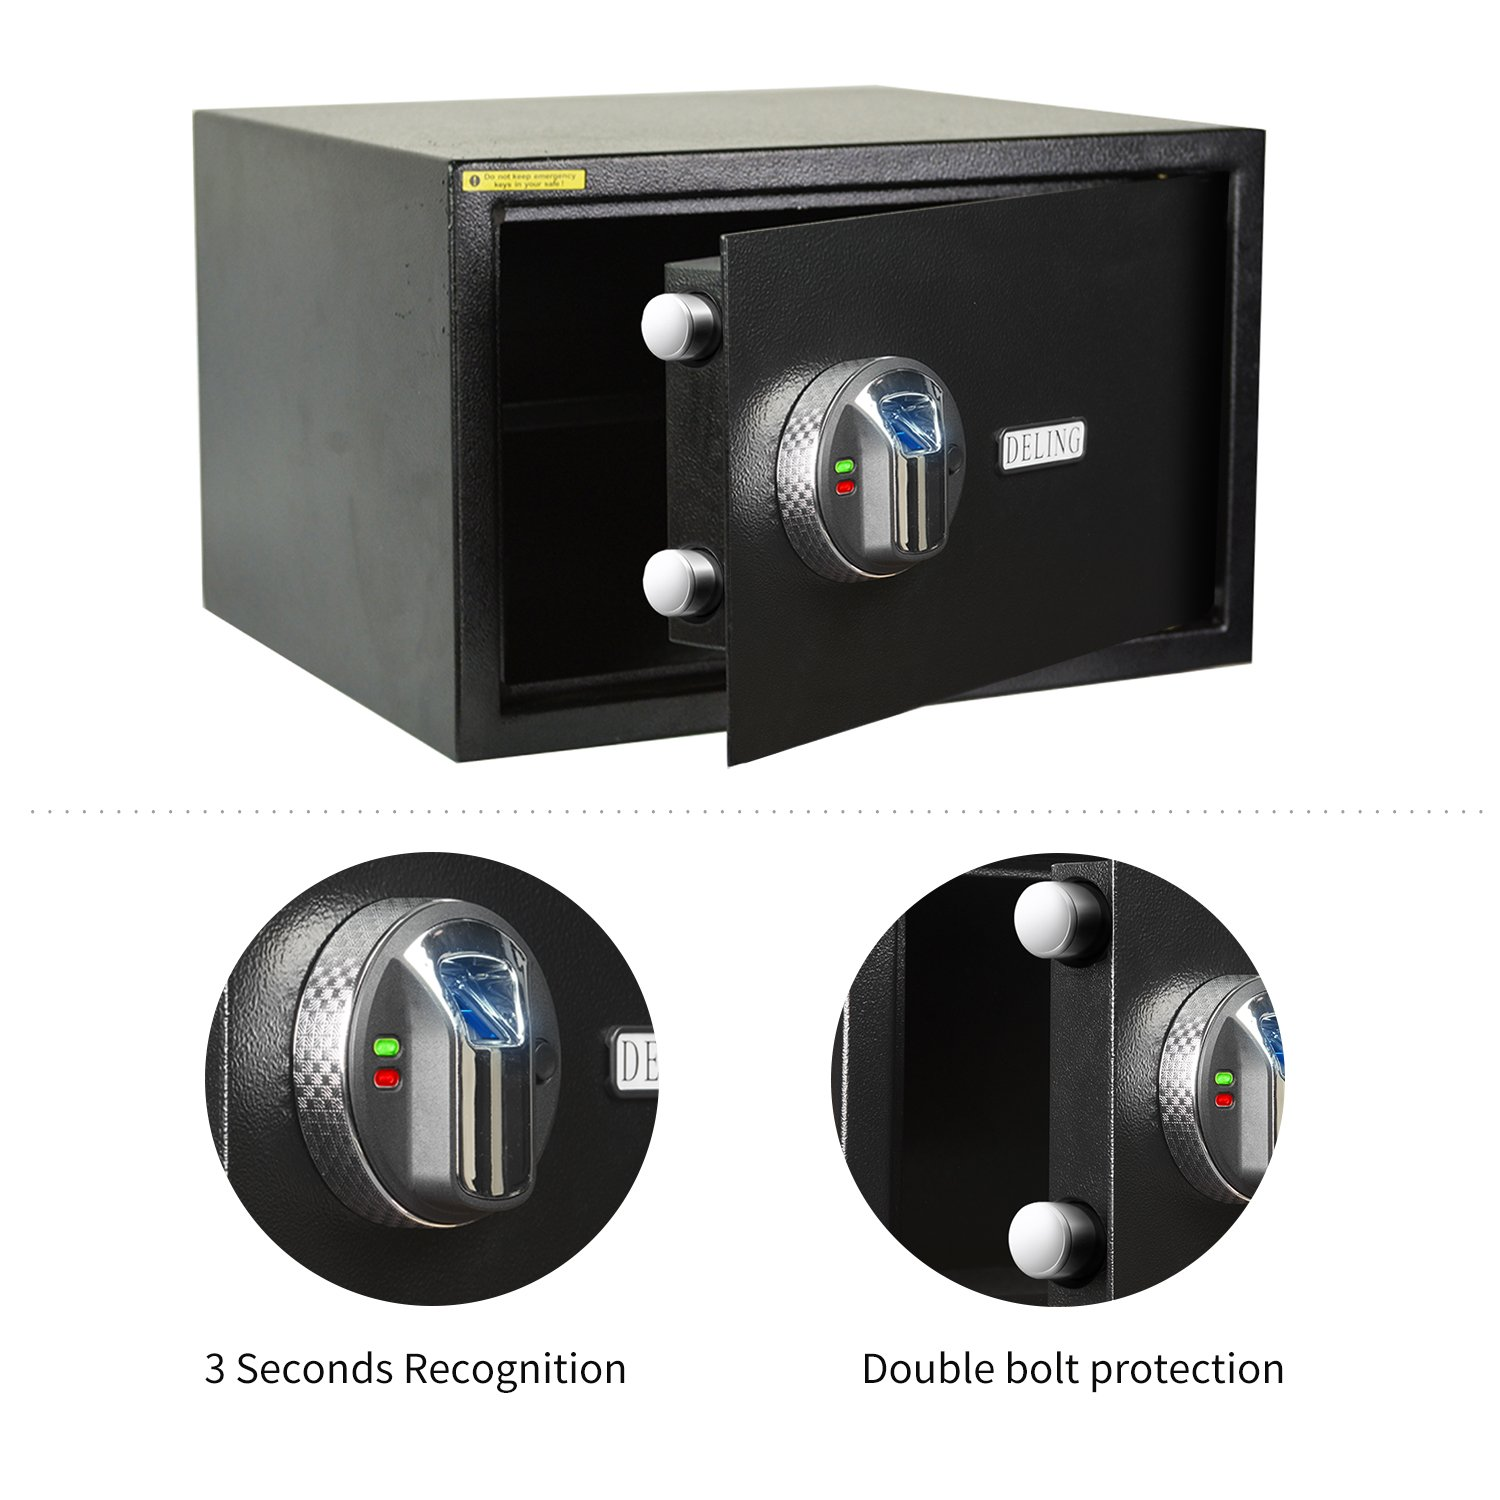 HYD-Parts Digital Security Safety Box,Money Gunsafe Cabinet Box for Home Office Hotel (27)